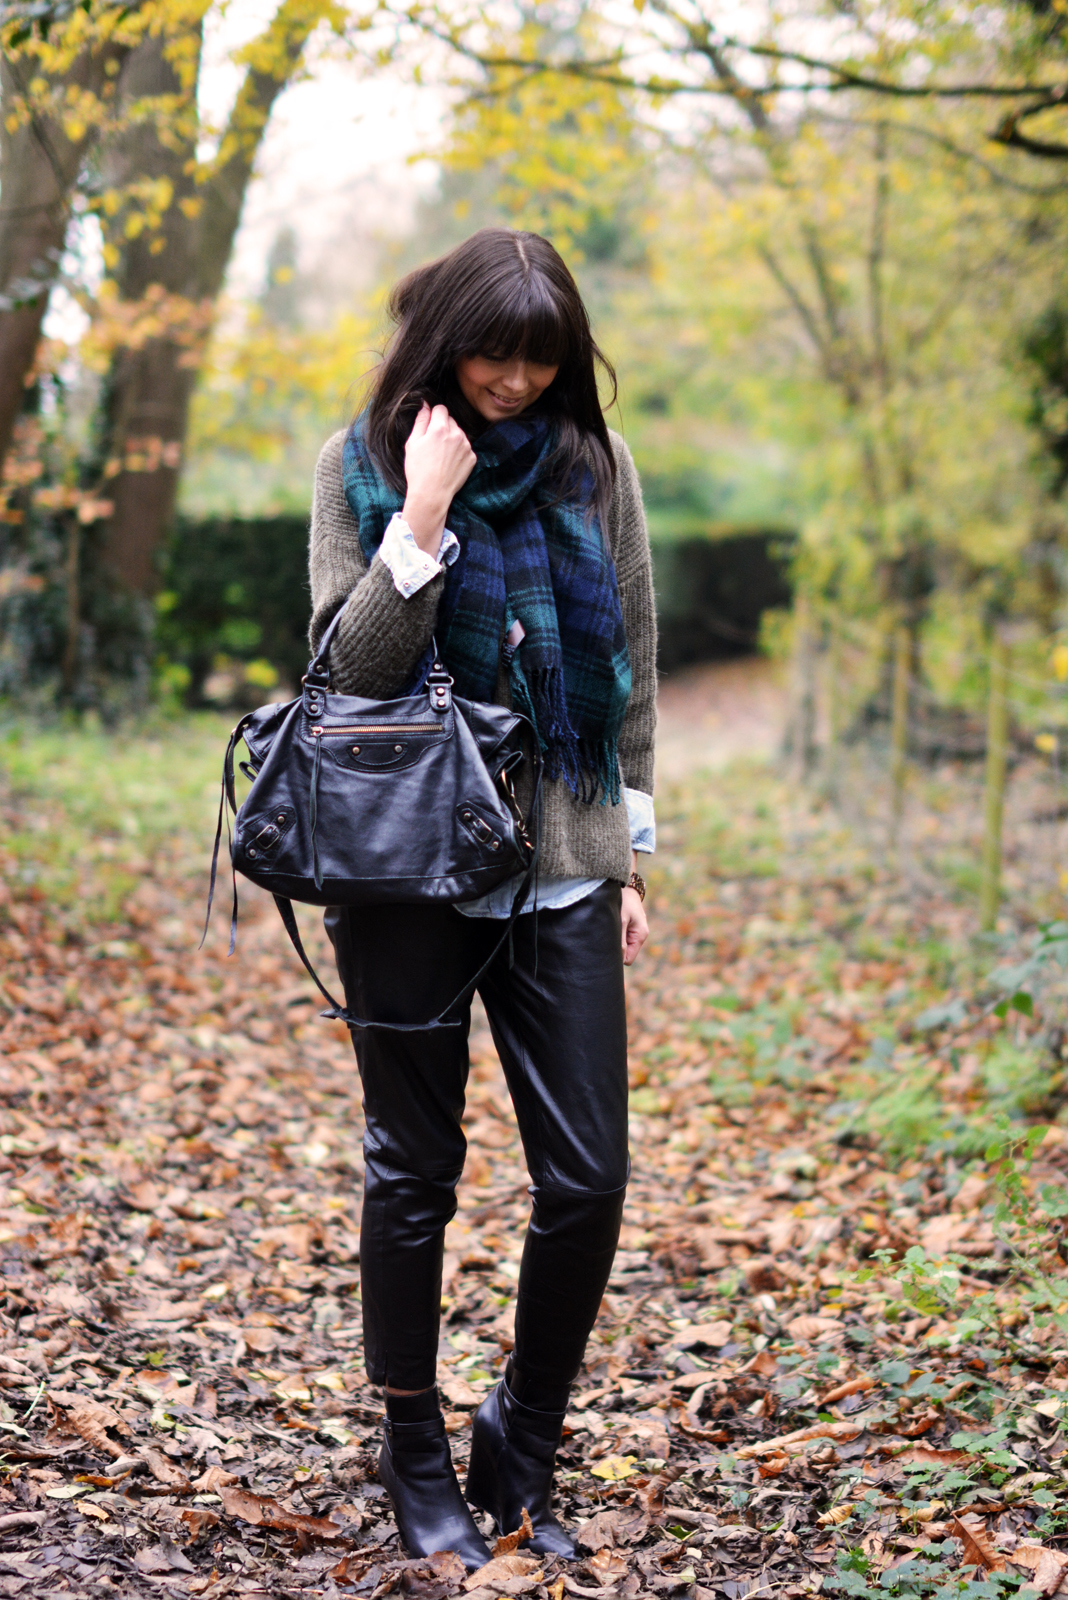 EJSTYLE - Autumn Fall street style OOTD, green tartan blanket scarf, khaki topshop jumper, denim shirt, Warehouse peg leg leather trousers, KG wedge black boots